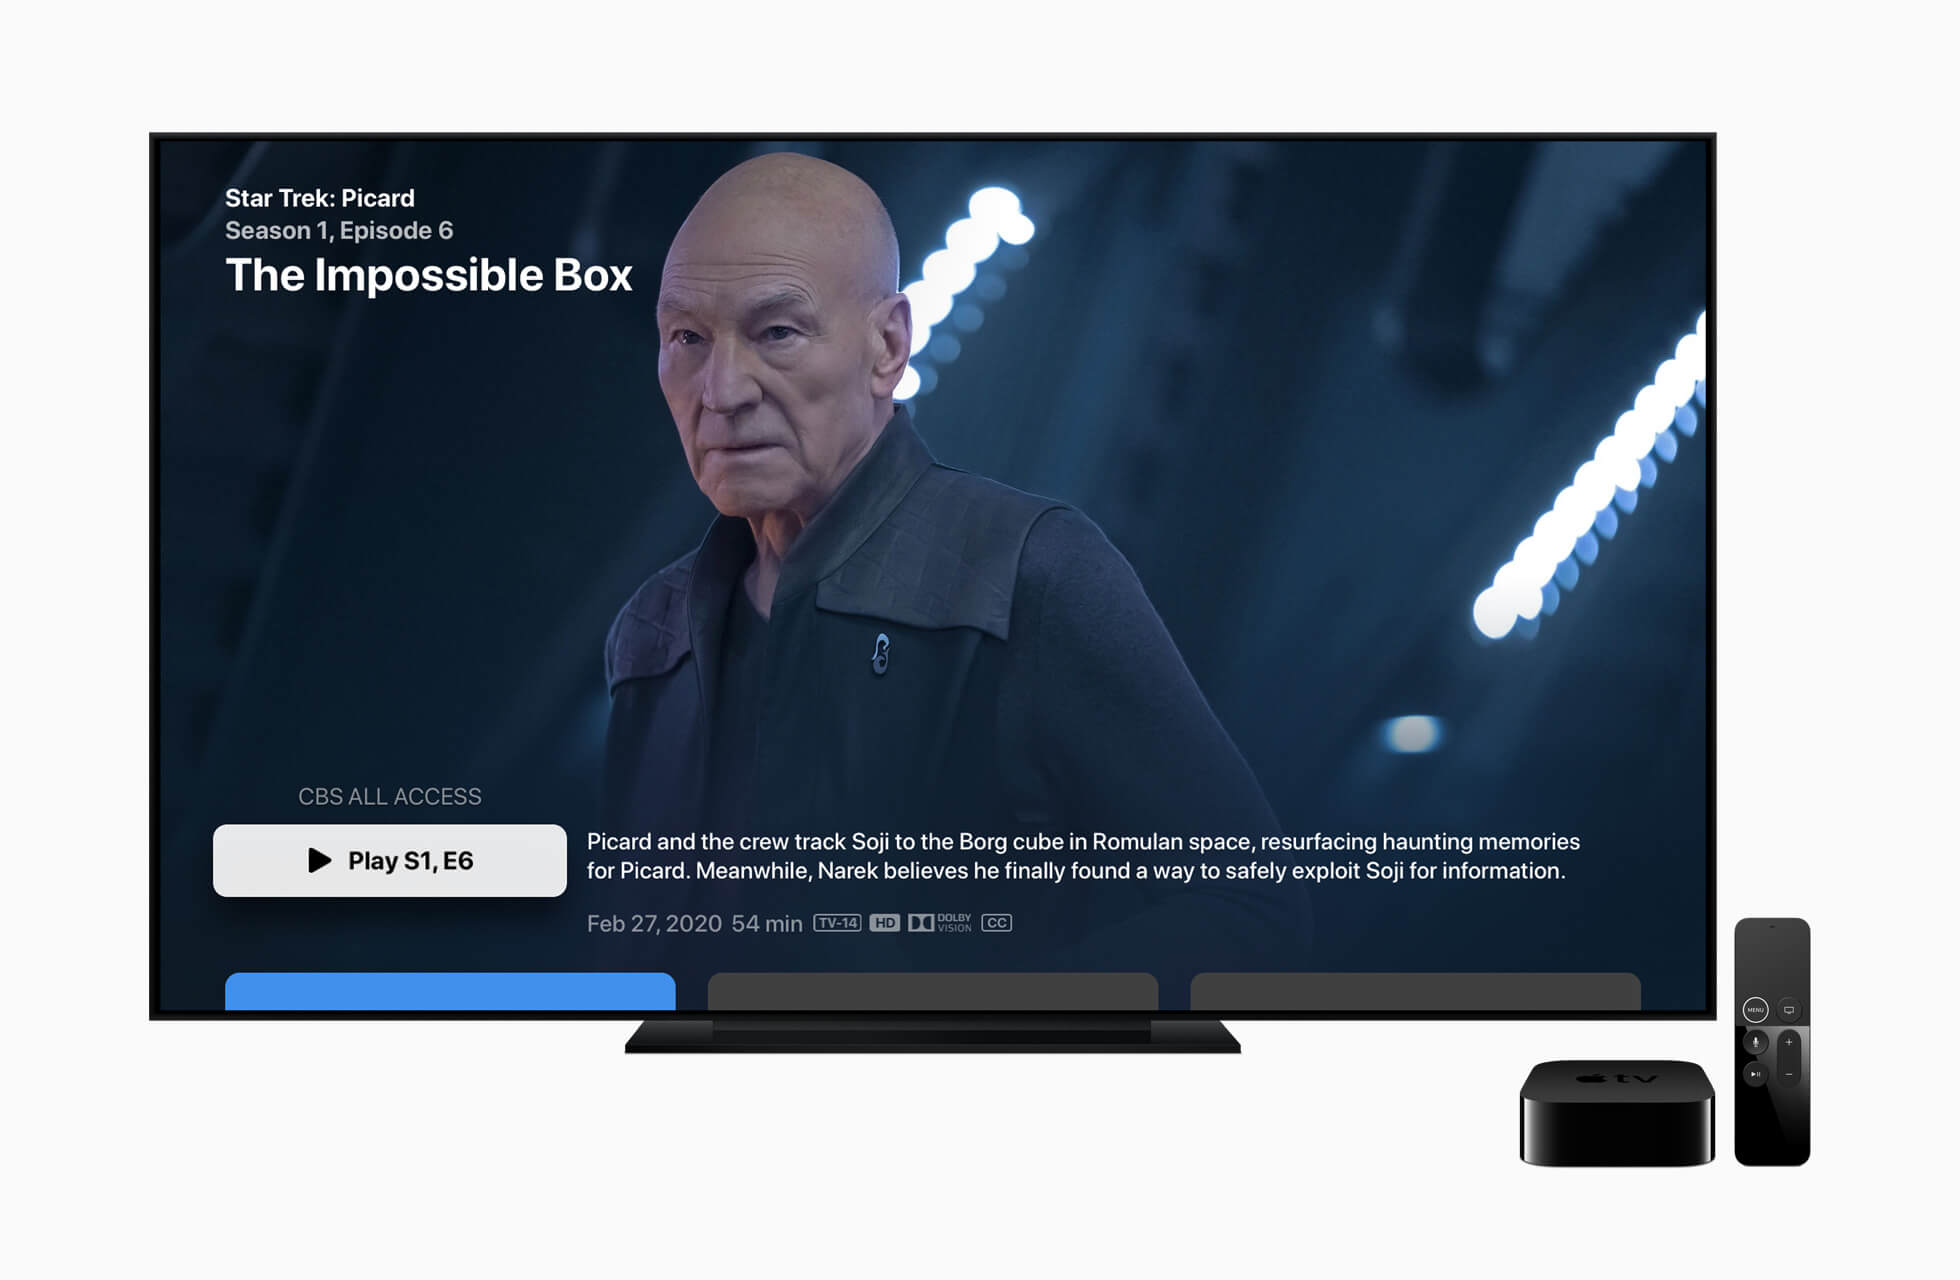 Apple TV+ Subscribers can Access to a Bundle of CBS All Access and Showtime at Great Value